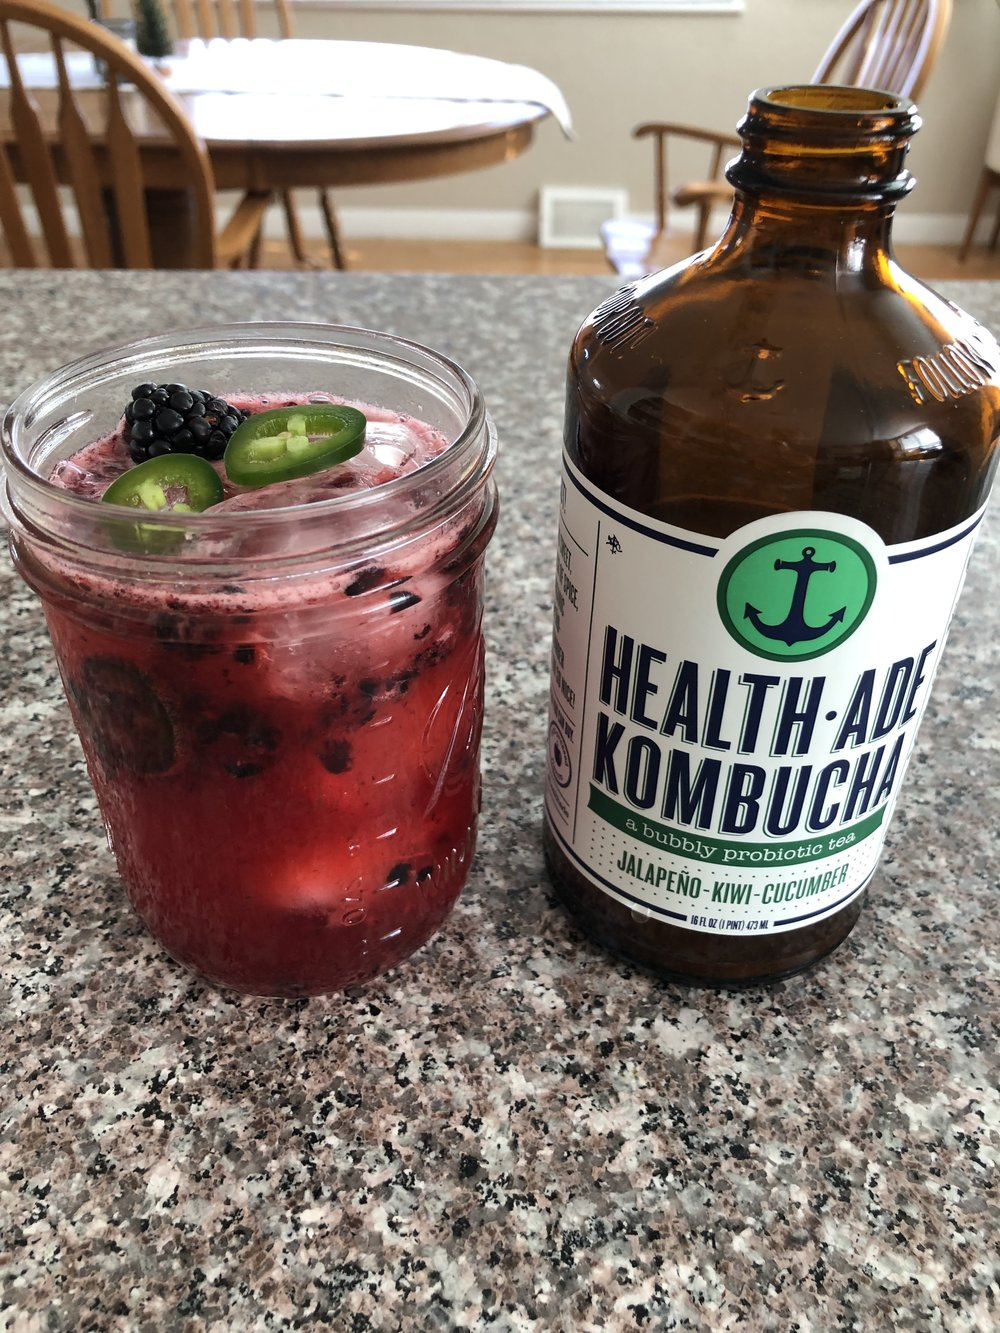 spicy kombucha margaritas